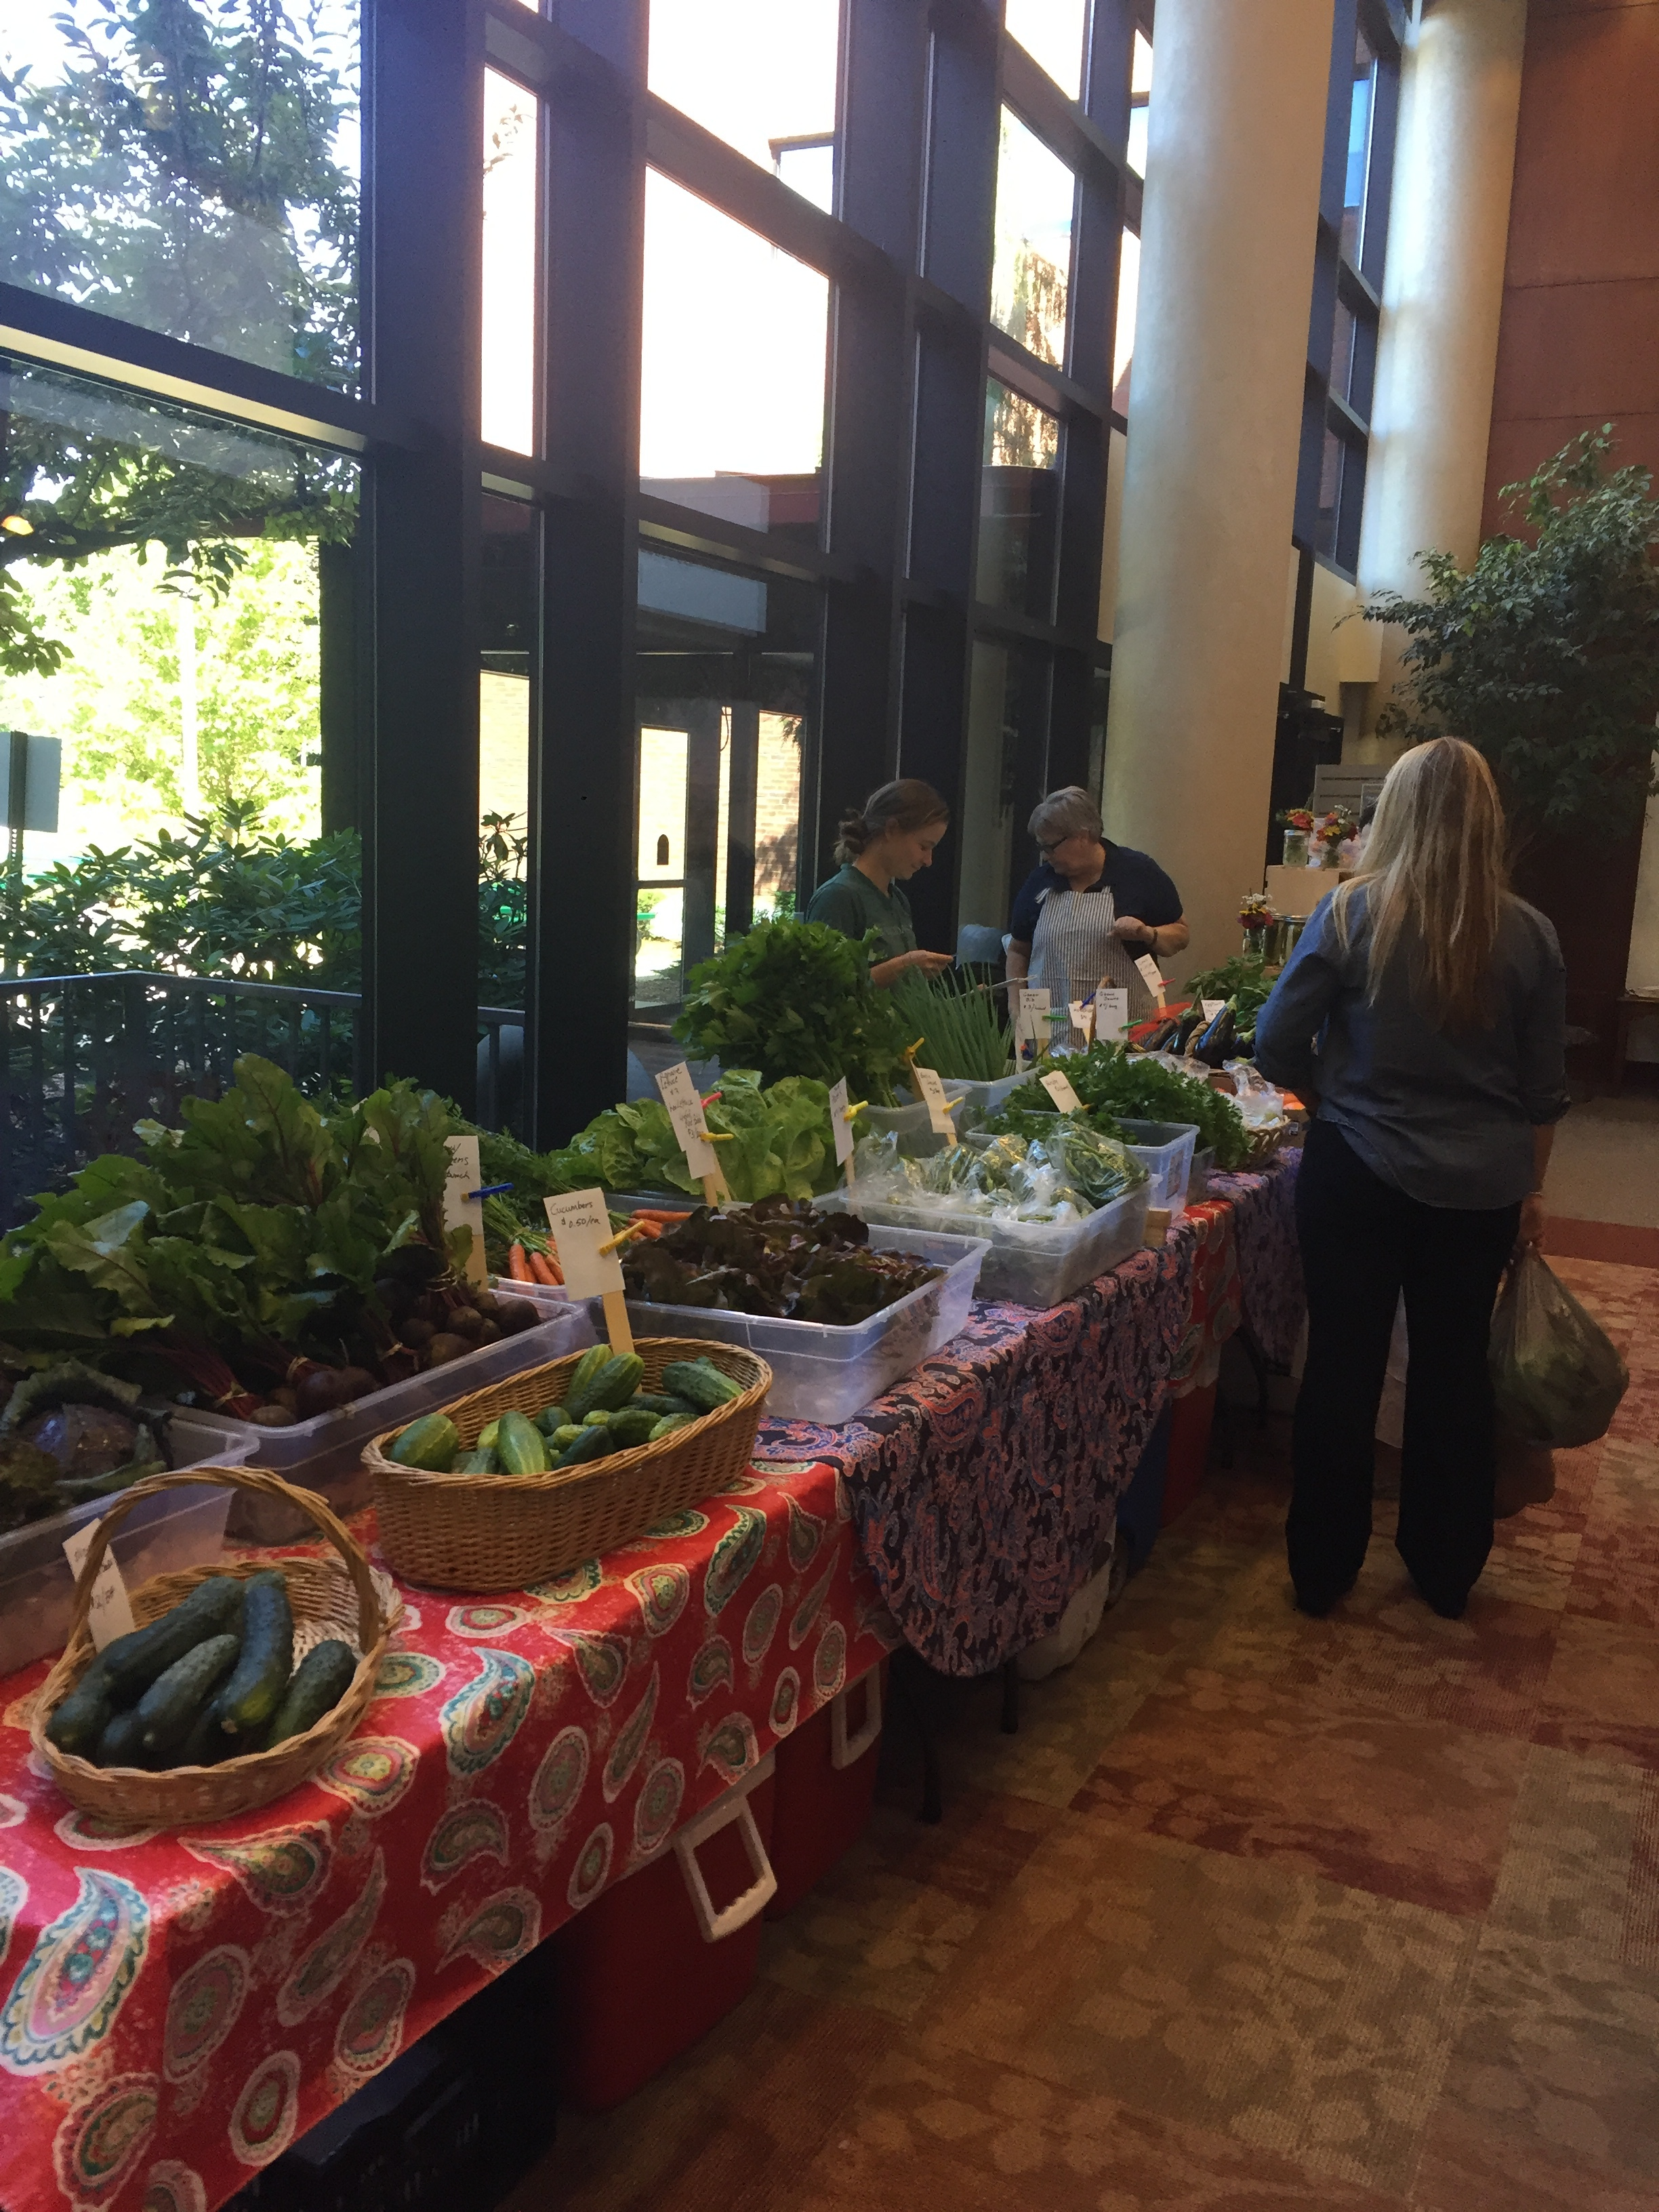 Farmer's Market at Cheshire Medical Center